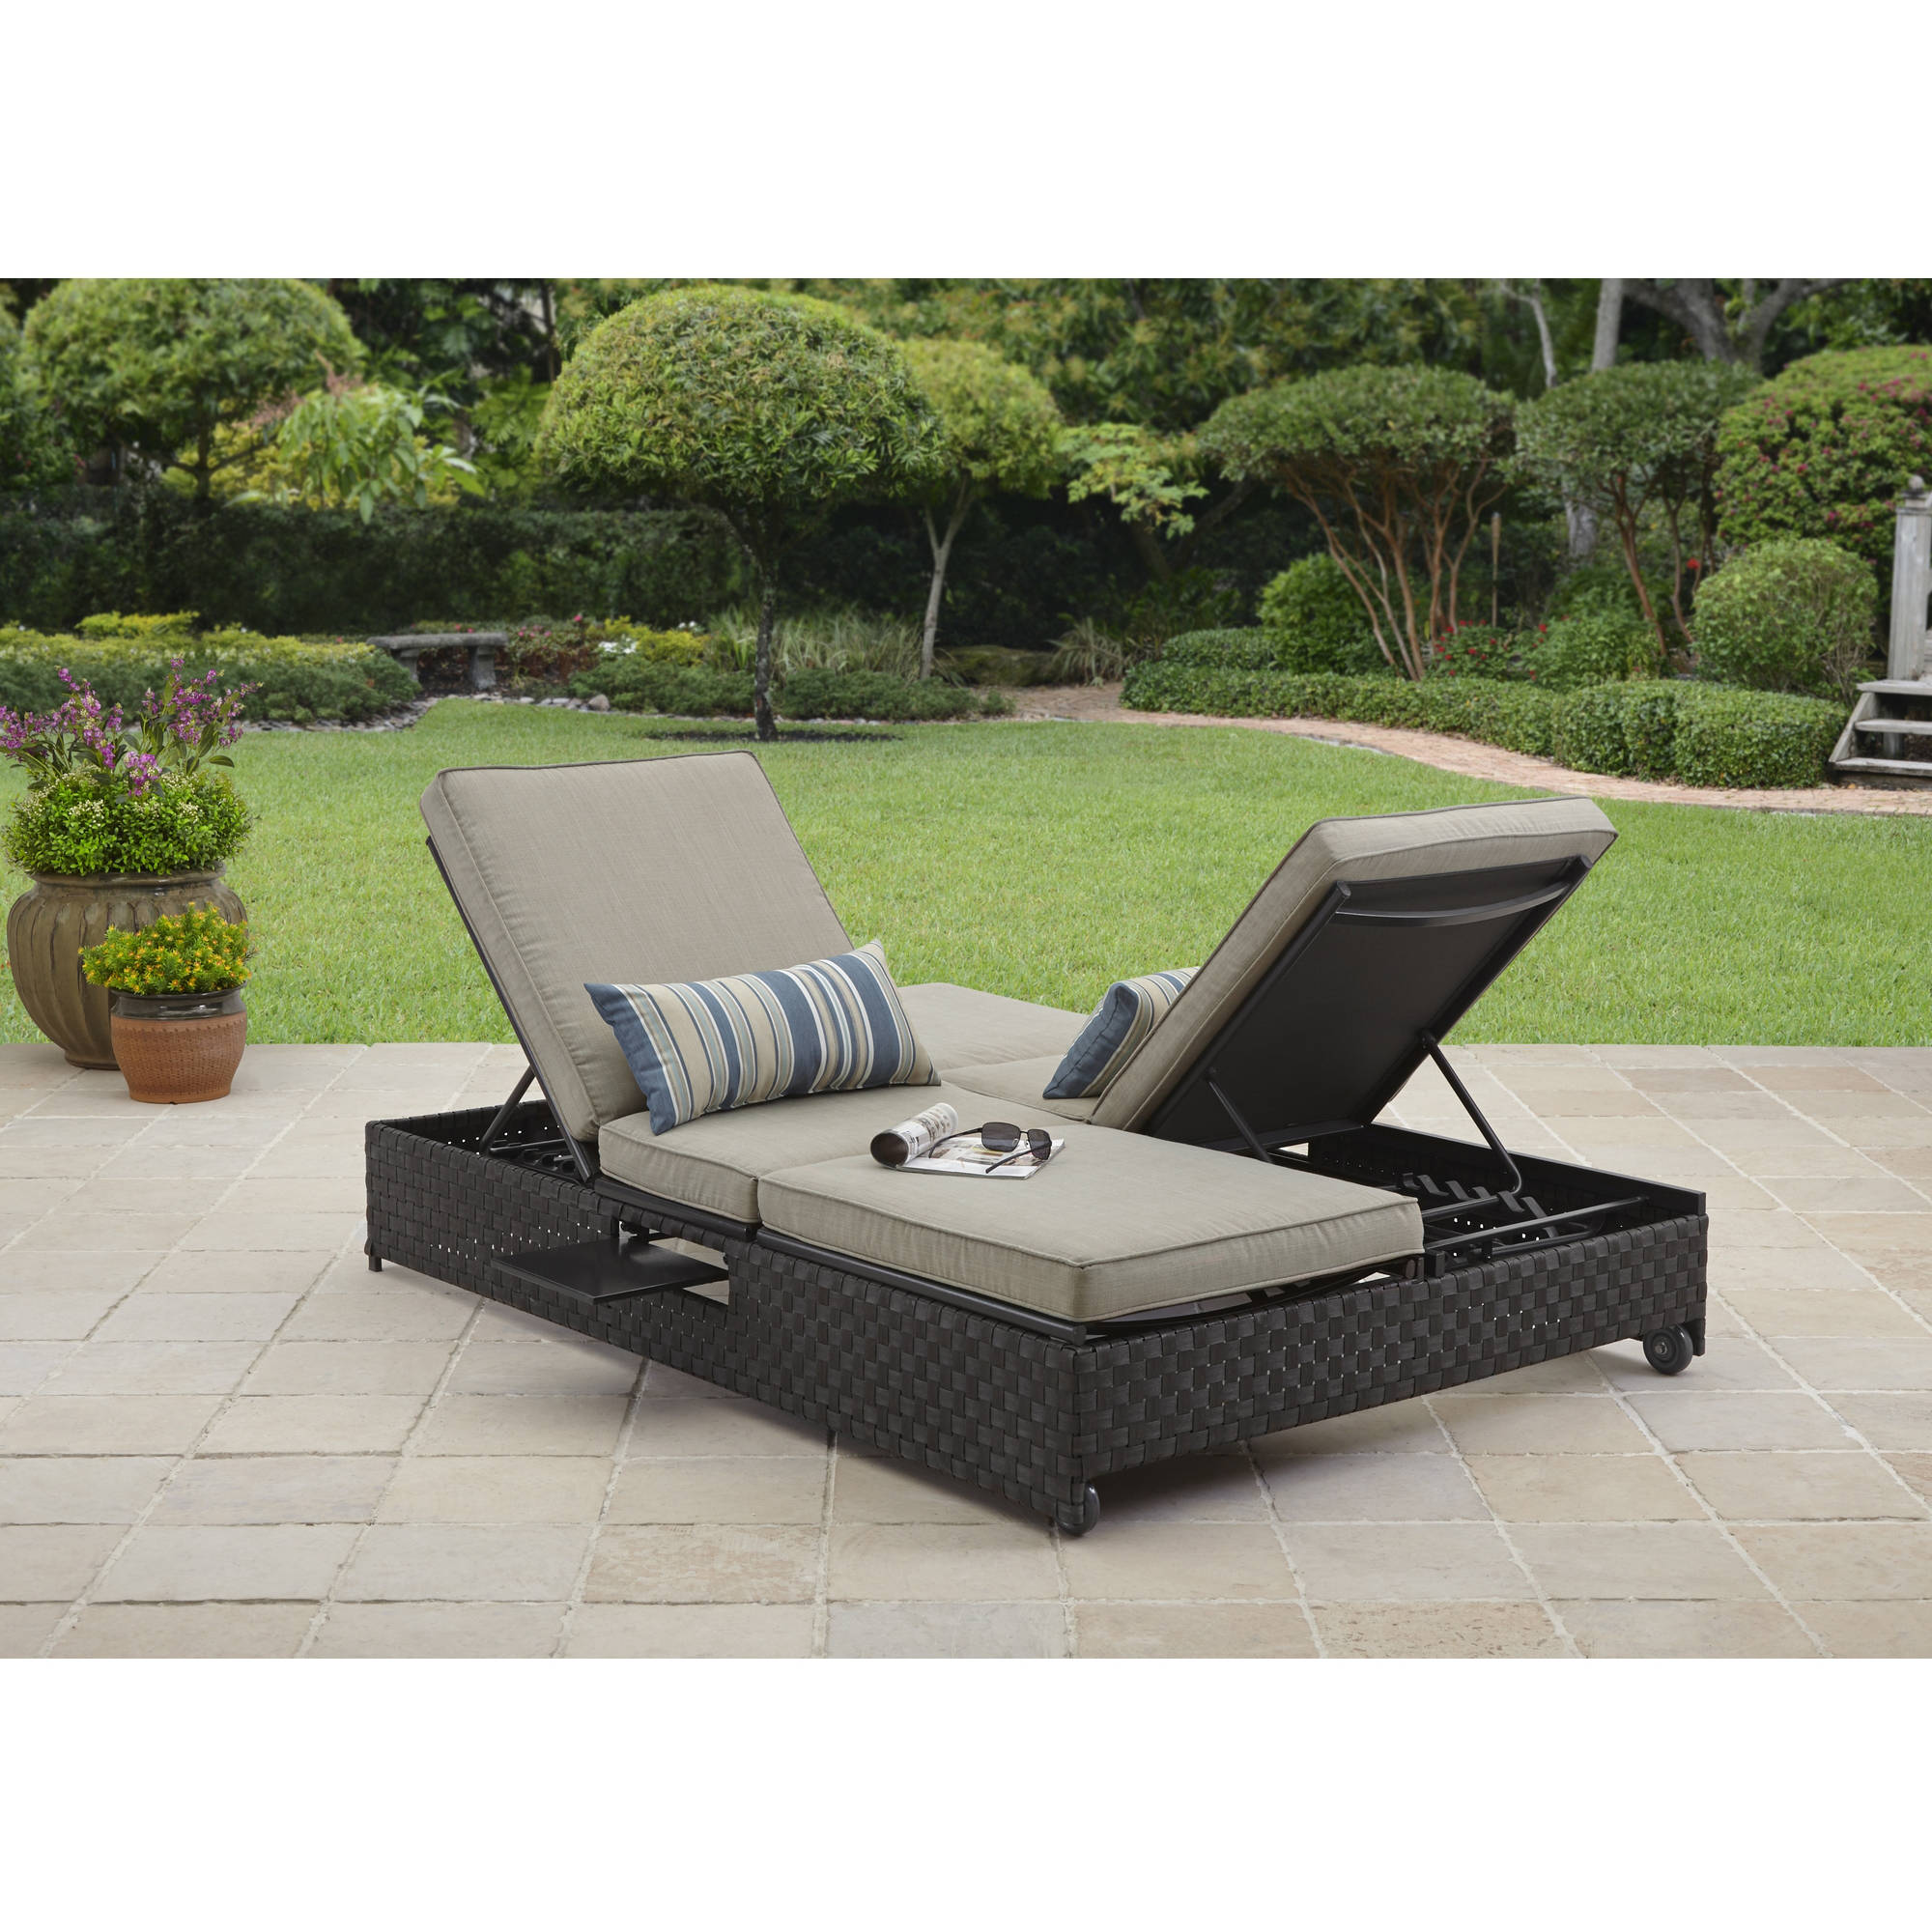 Beau Better Homes And Gardens Avila Beach Double Lounger/Sofa